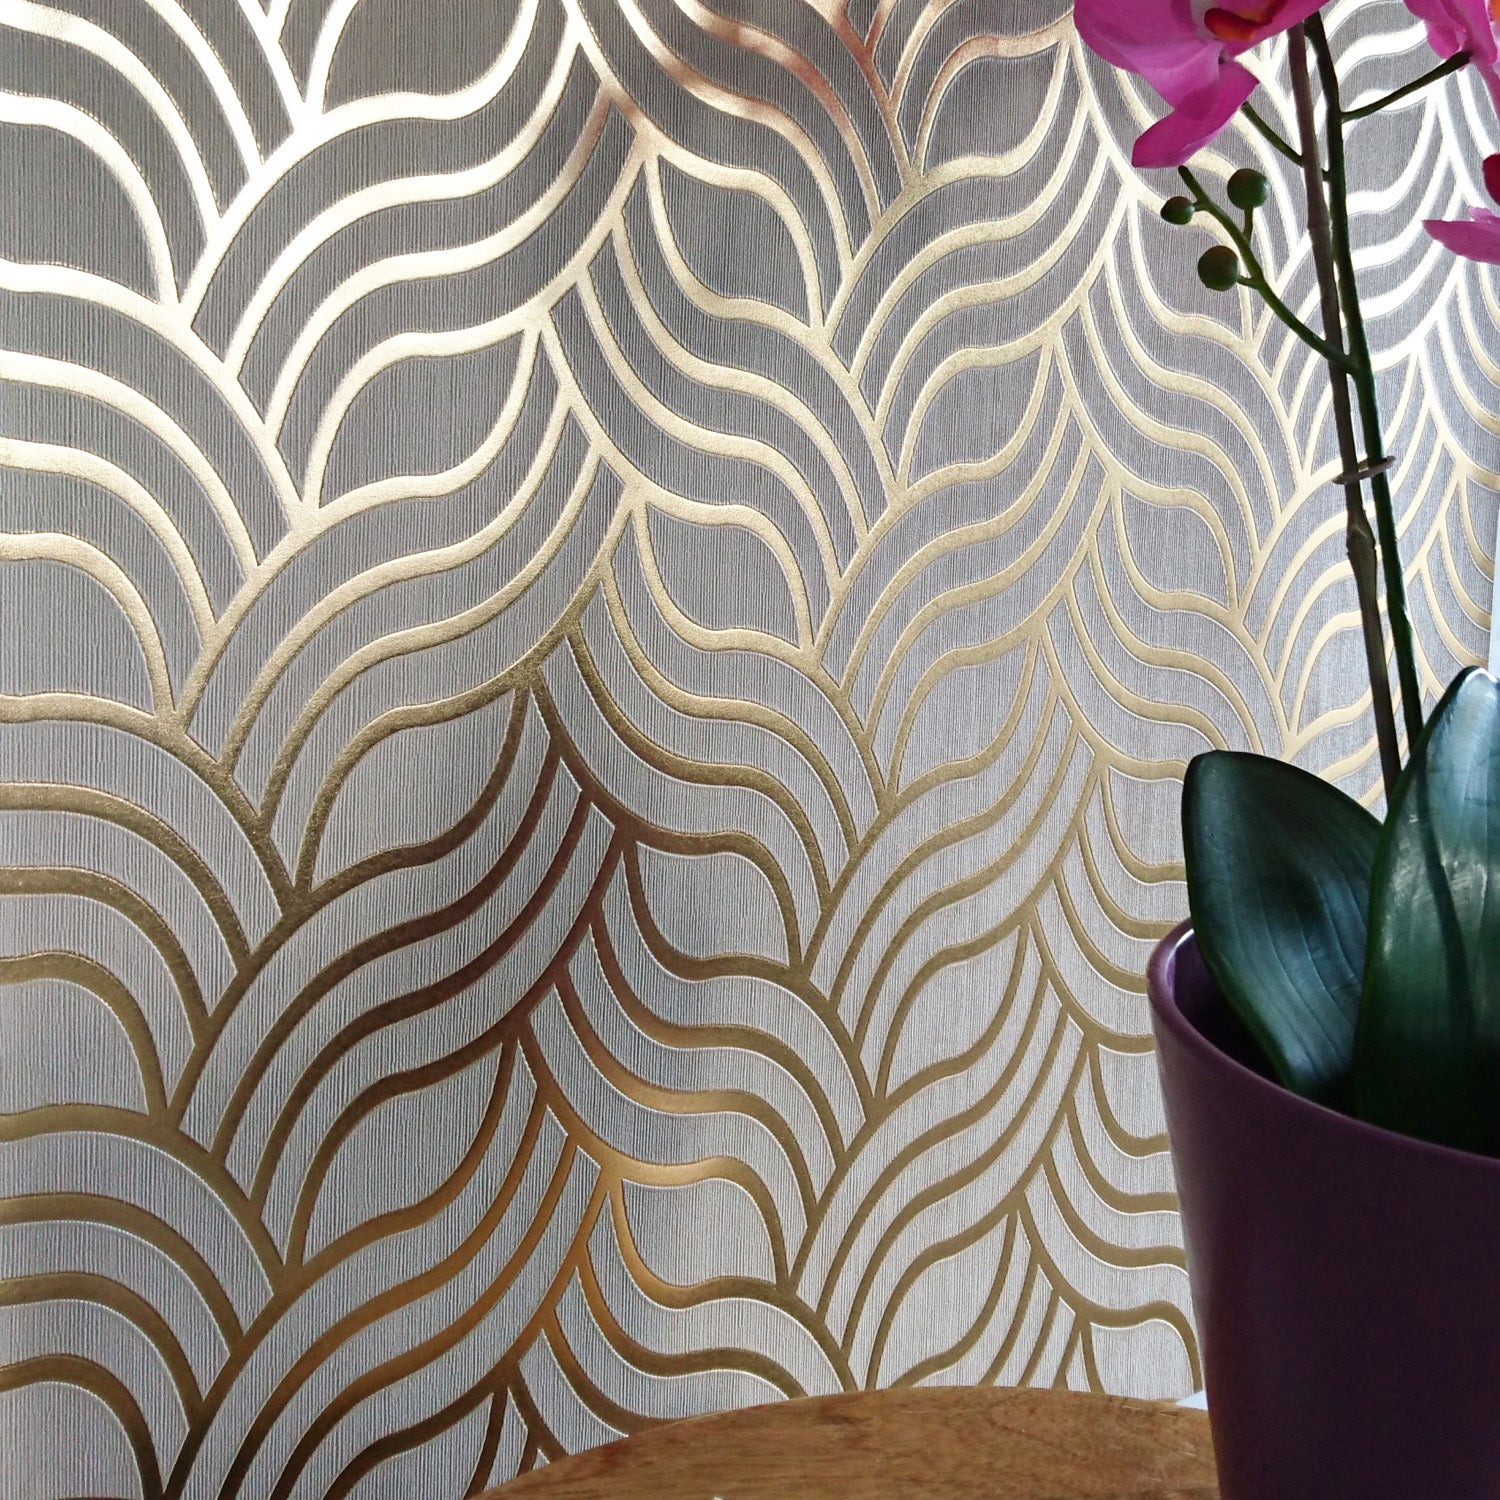 Demure Art Deco 1920 S Style Geometric Wallpaper In Beige Gold